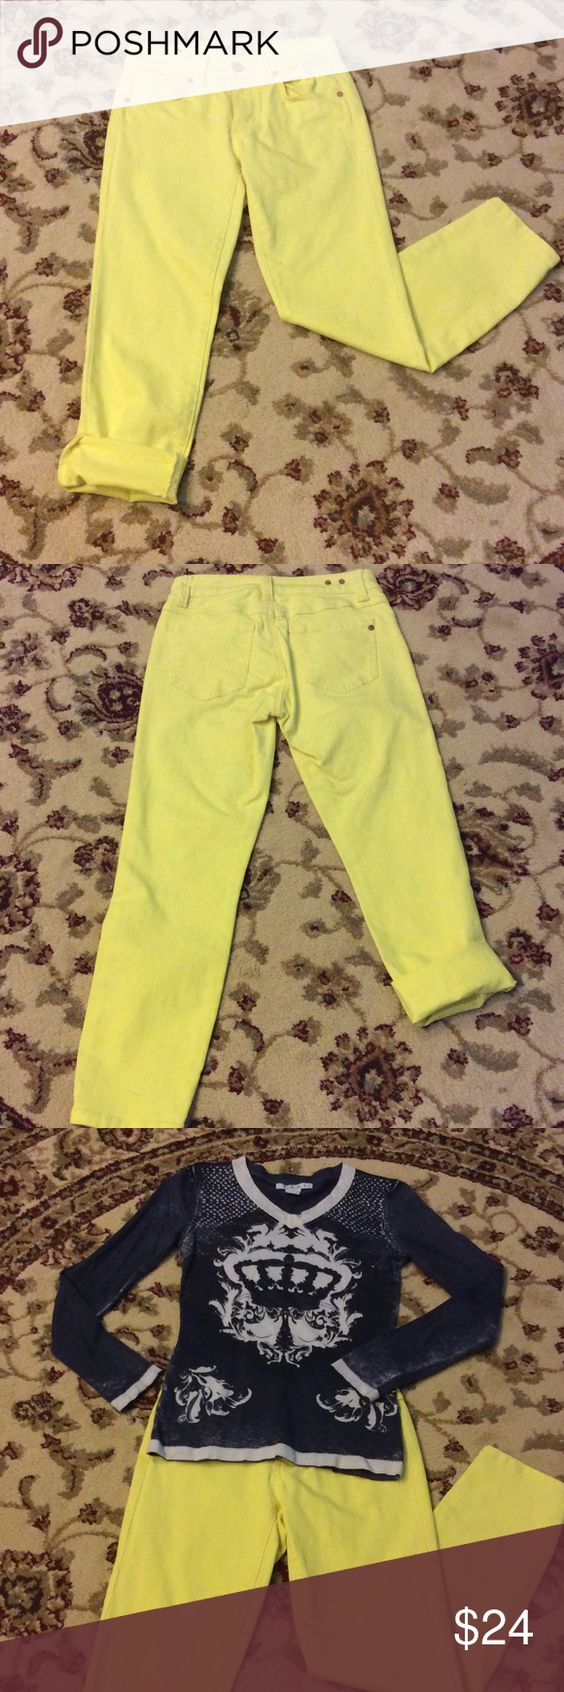 """💕 CAbi Cropped Bree Jean in Citron 💕 These cute highlighter yellow colored capris are surprisingly versatile with many colors!  Put them with white, gray, denim, navy, or black for a real fun look!  They have front & rear pockets & can be rolled up to any length desired.  Measures 13"""" at waist, 11"""" rise & 34"""" length. CAbi Pants Capris"""